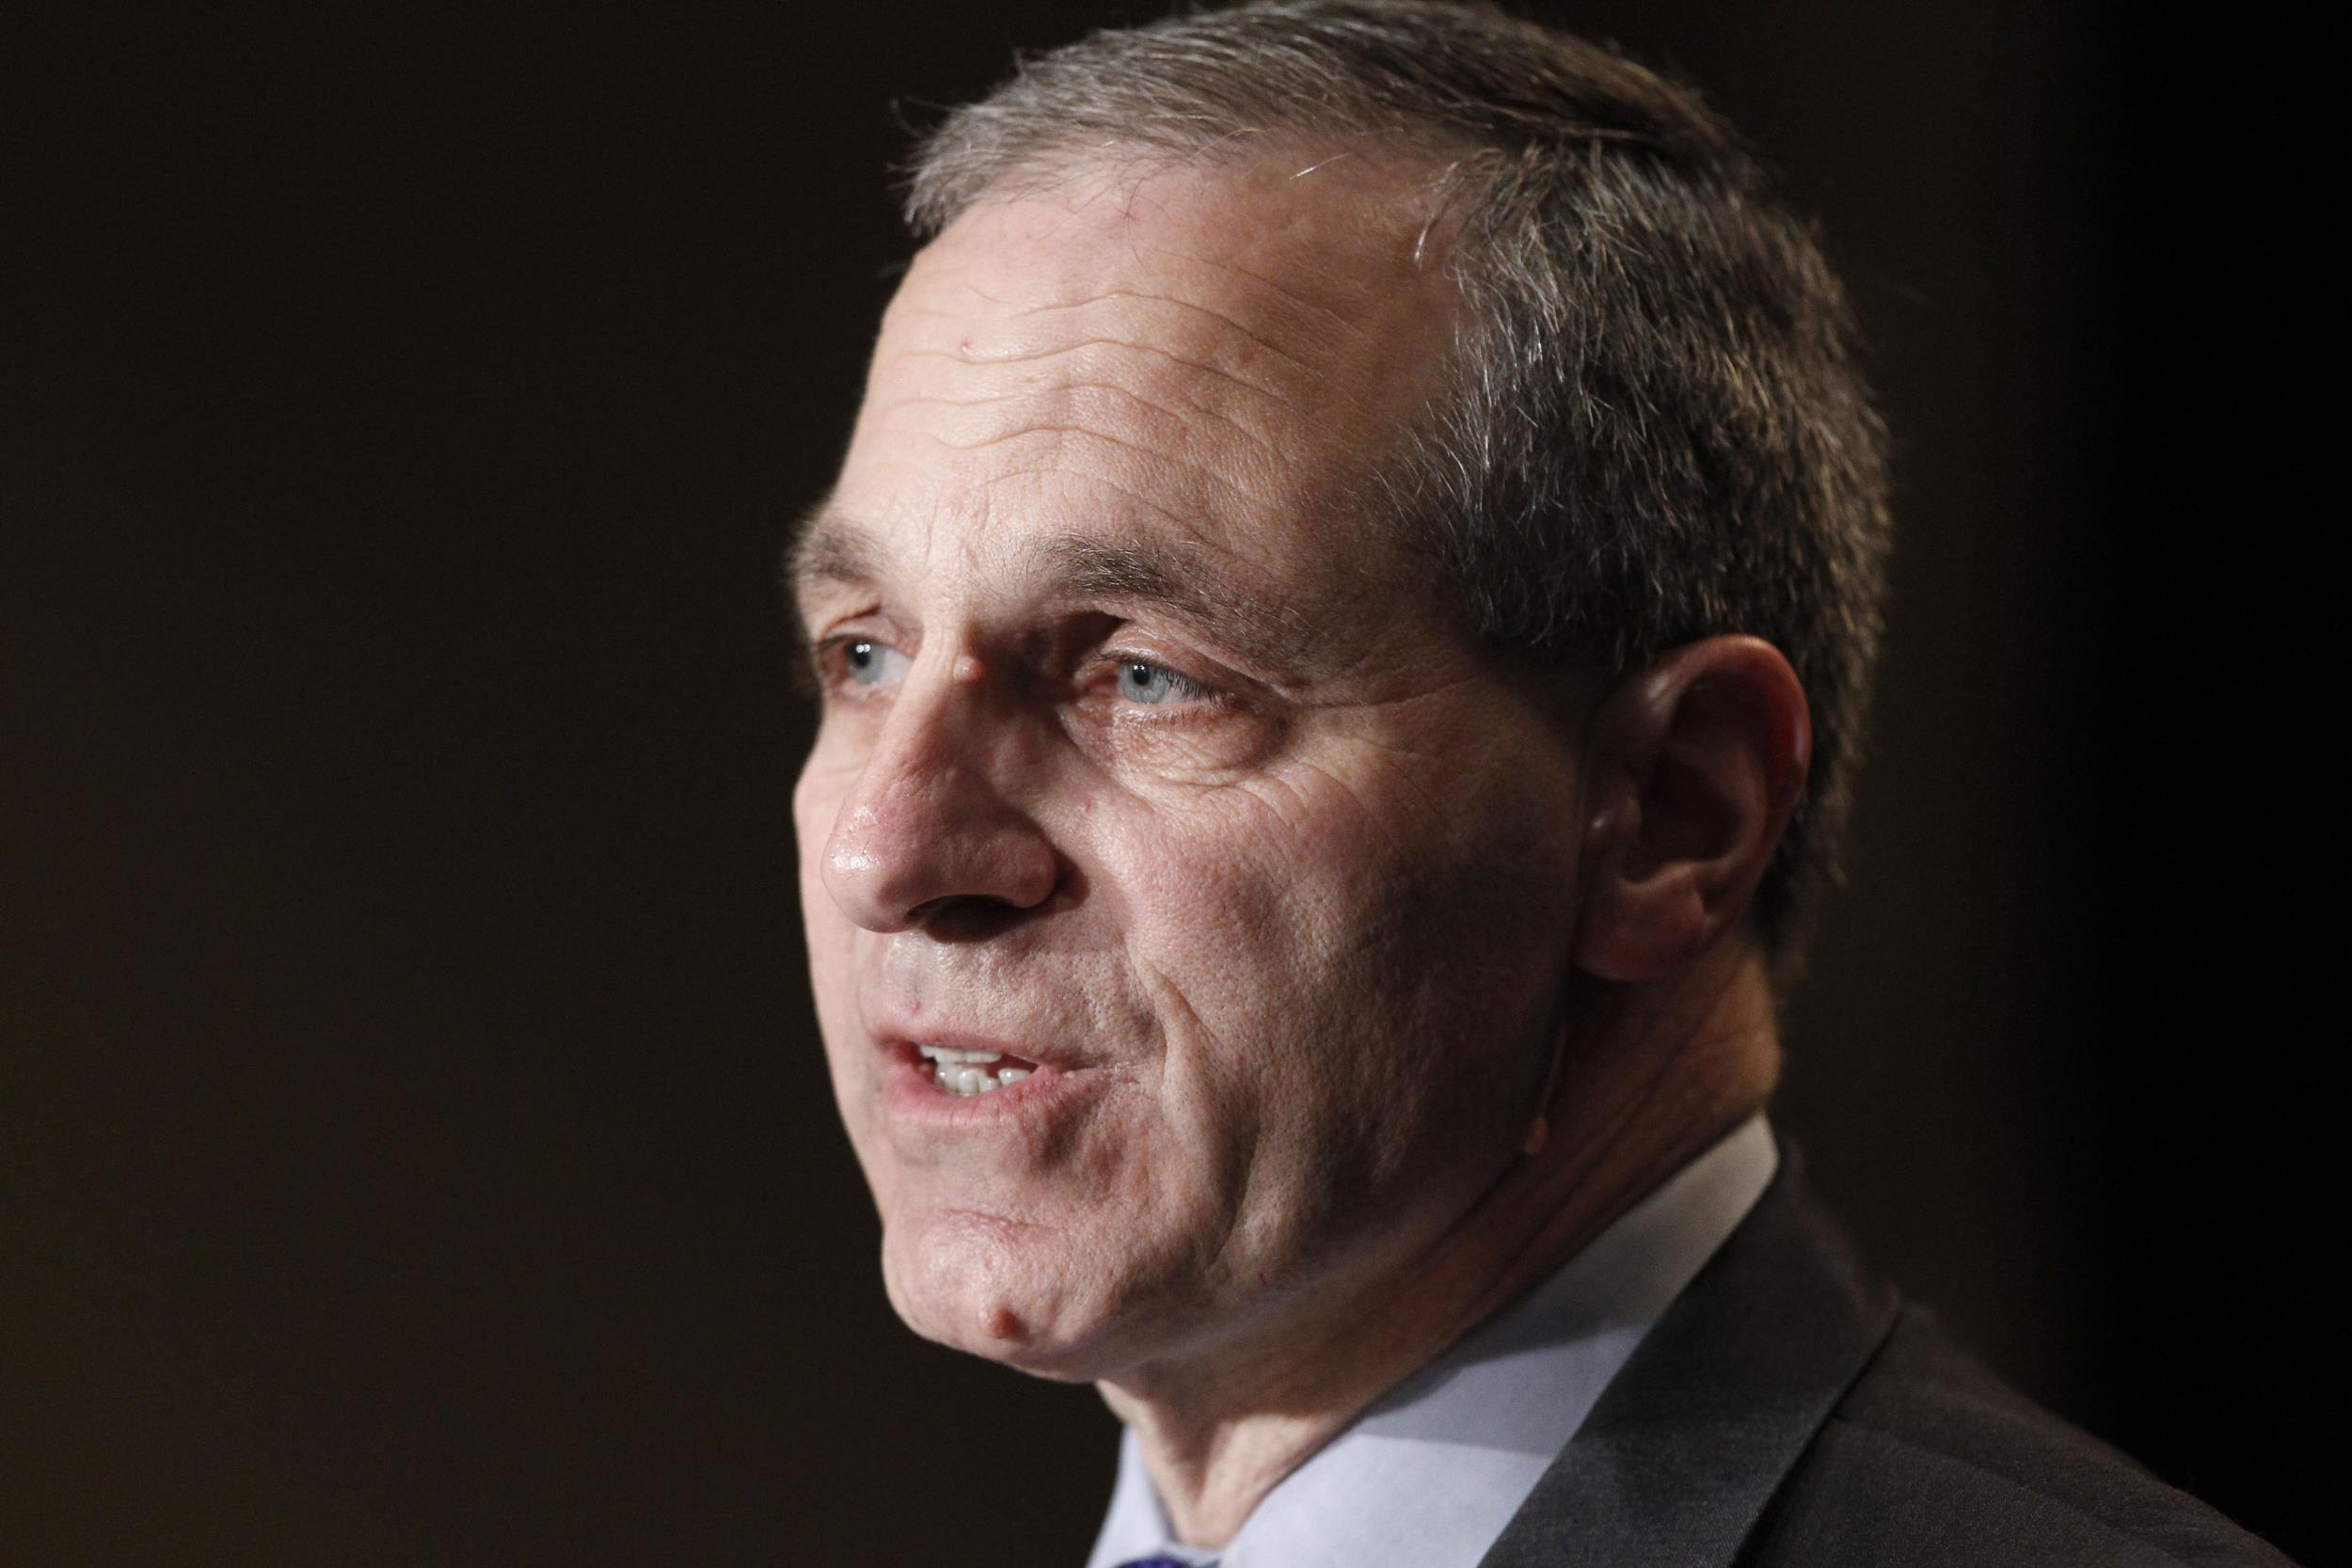 Image: Former FBI director Louis Freeh in Nov. 21, 2011.